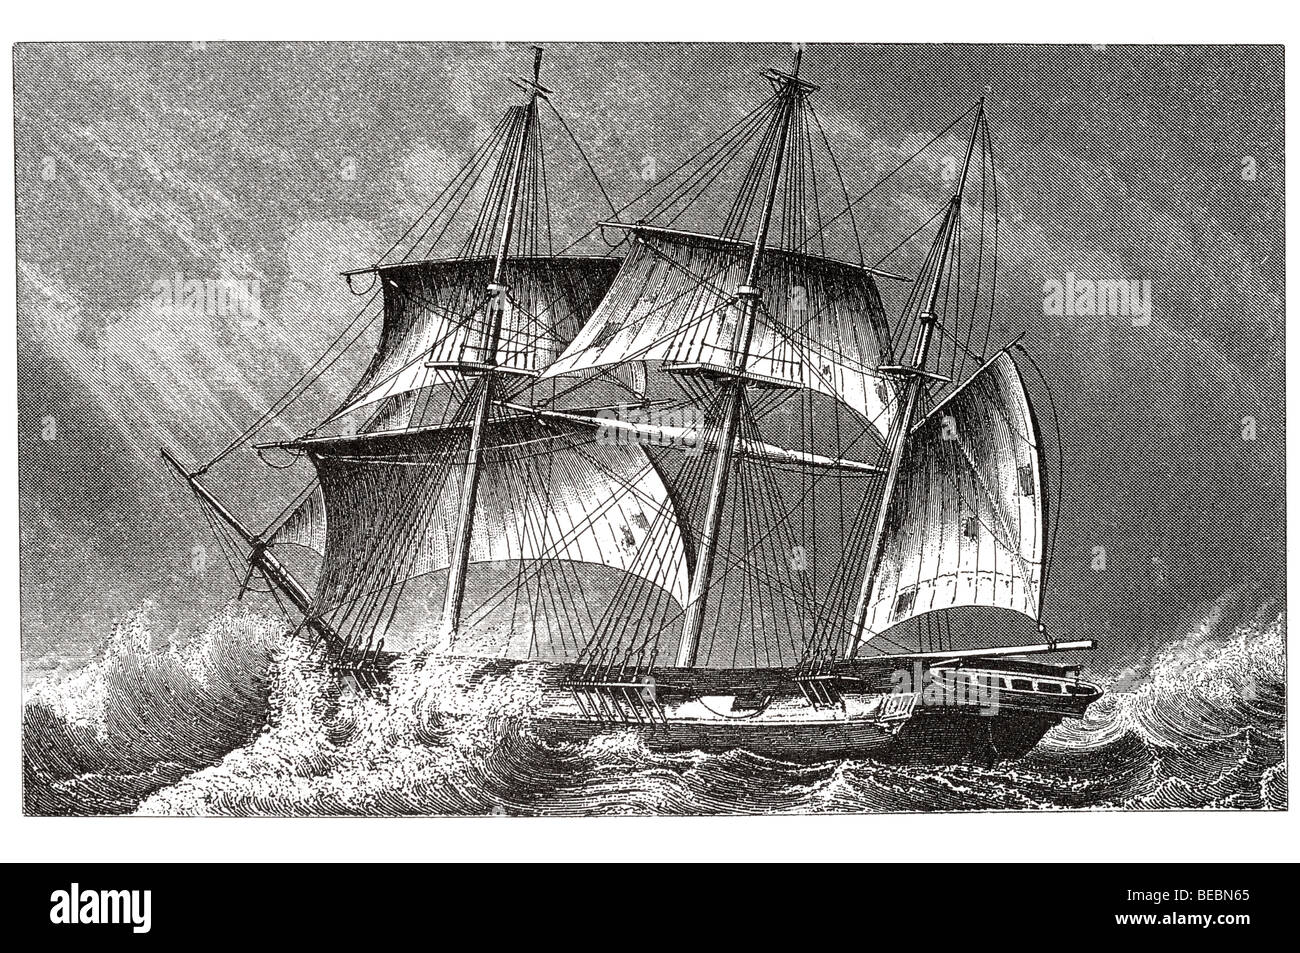 barque under close reefed topsails - Stock Image